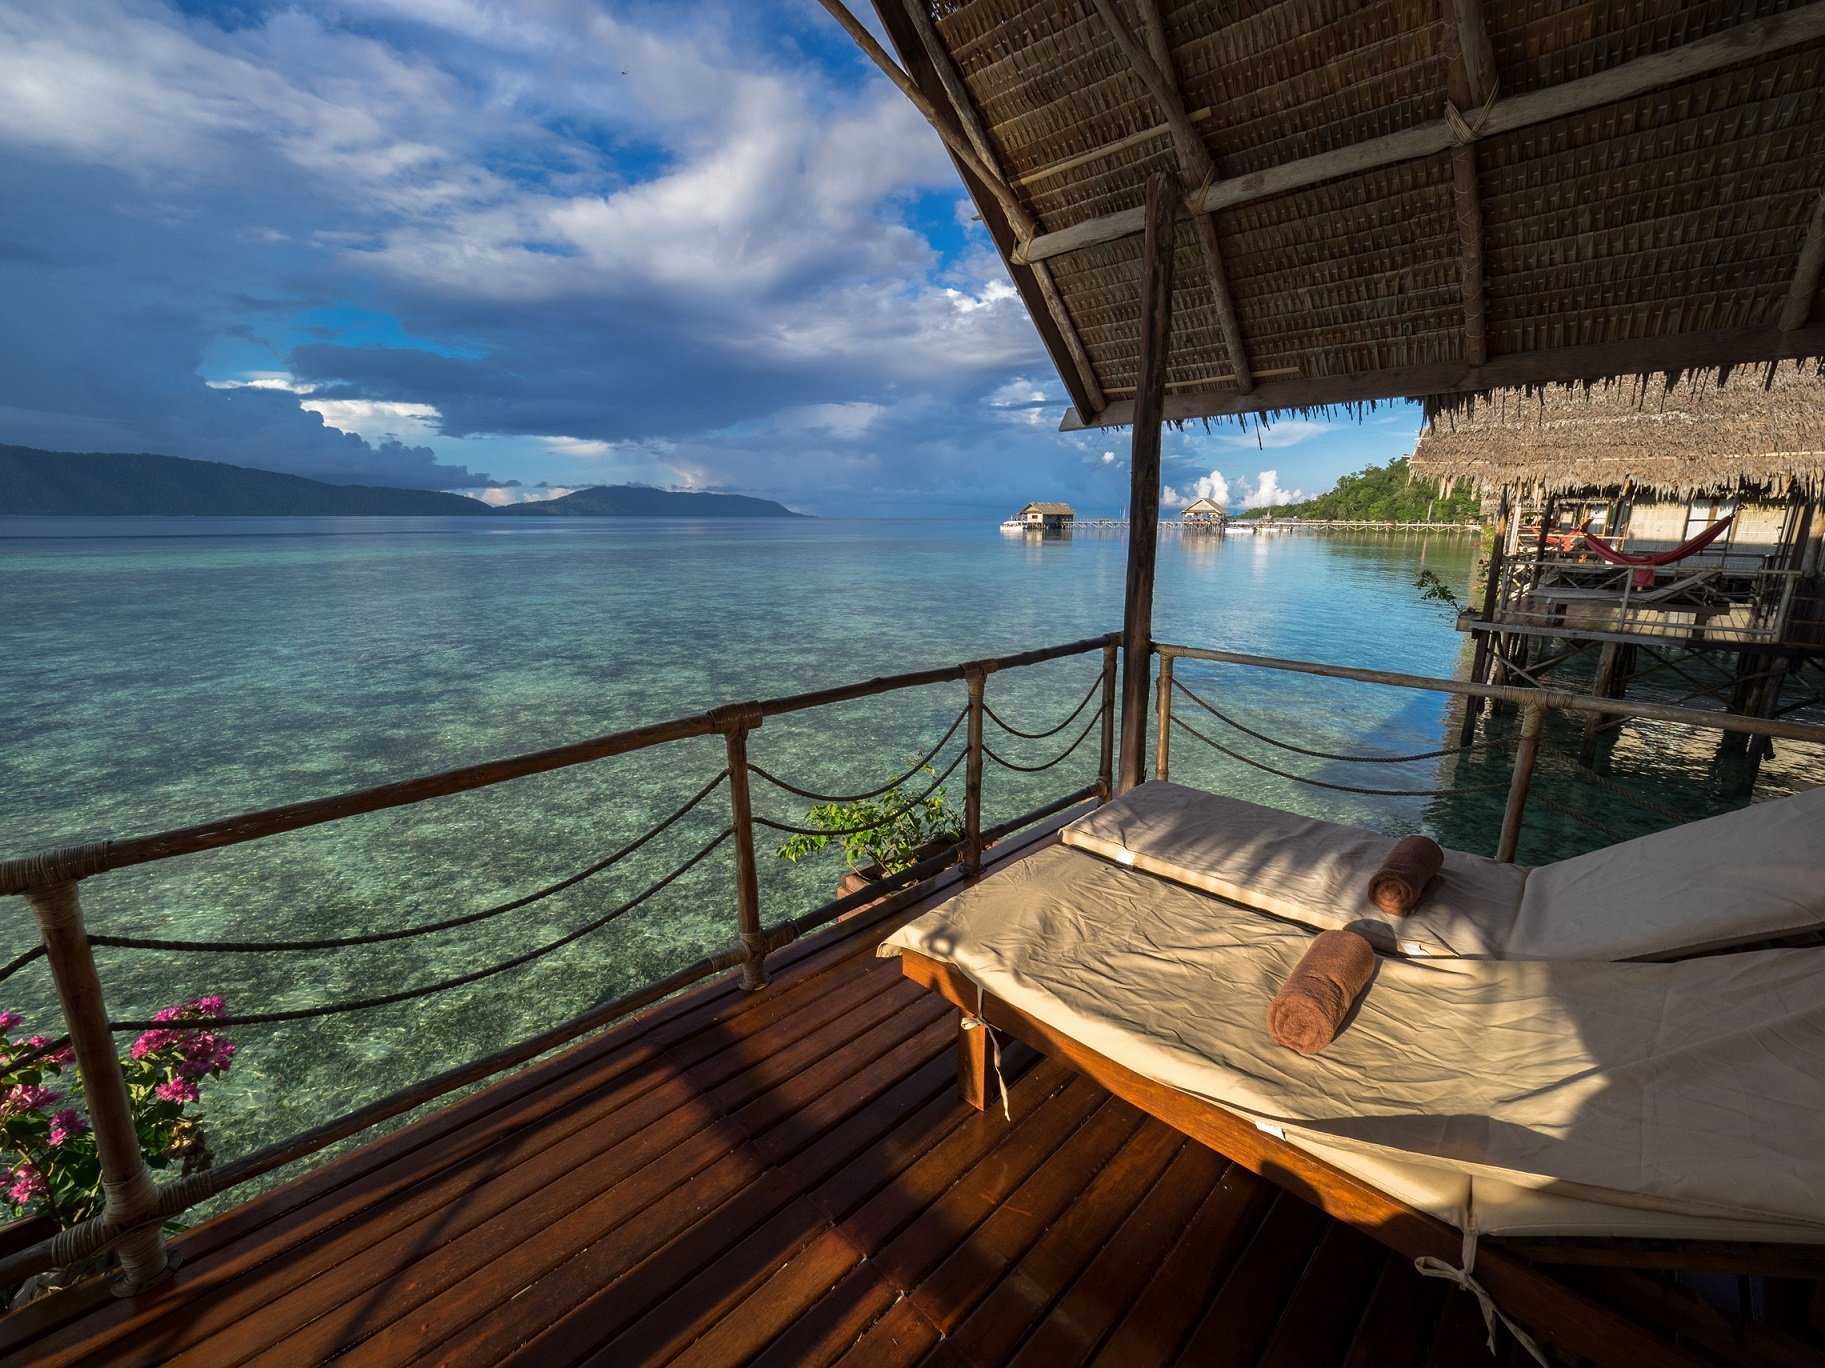 (English) view from the balcony of our water bungalows in Raja Ampat with sun loungers in the front and our dive centre and islands of the Dampier Straight in the back